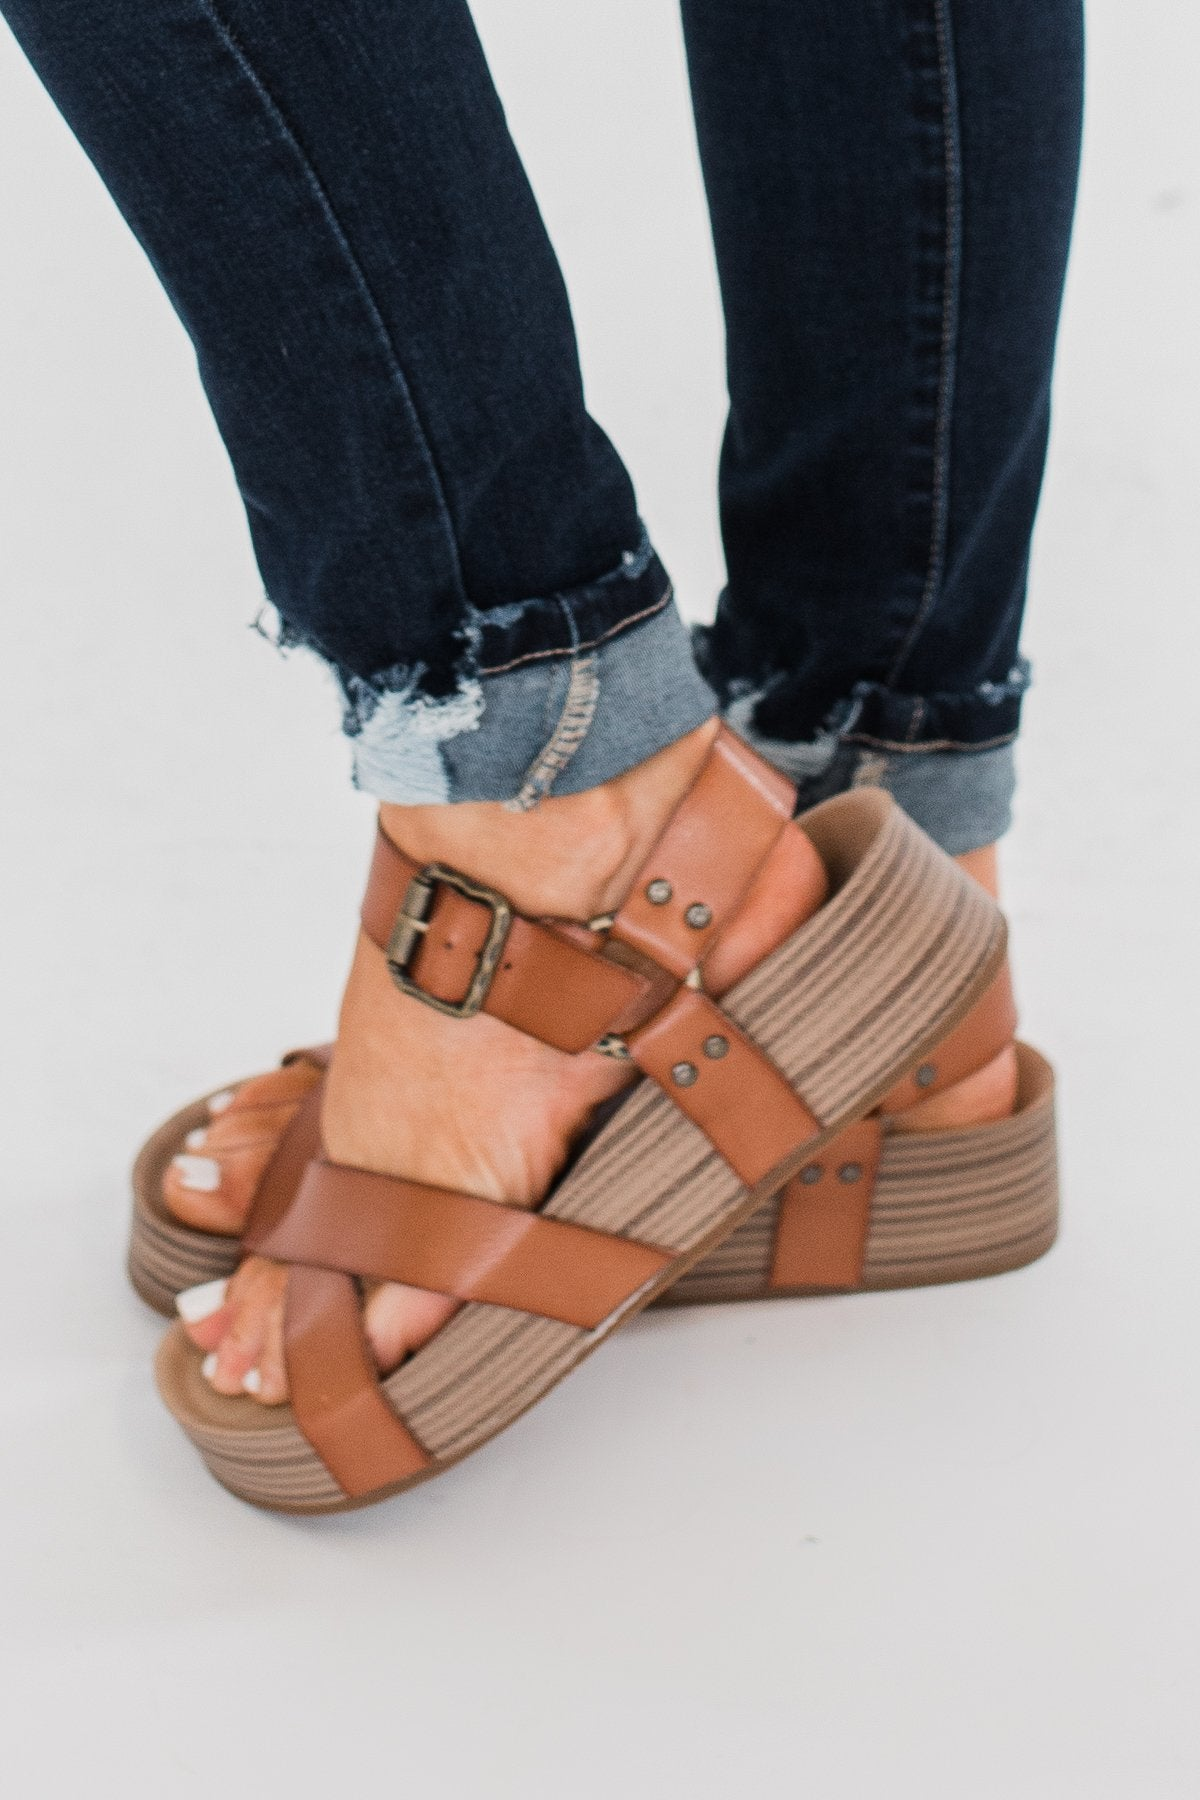 Blowfish Makara Platform Sandals- Arabian Sand